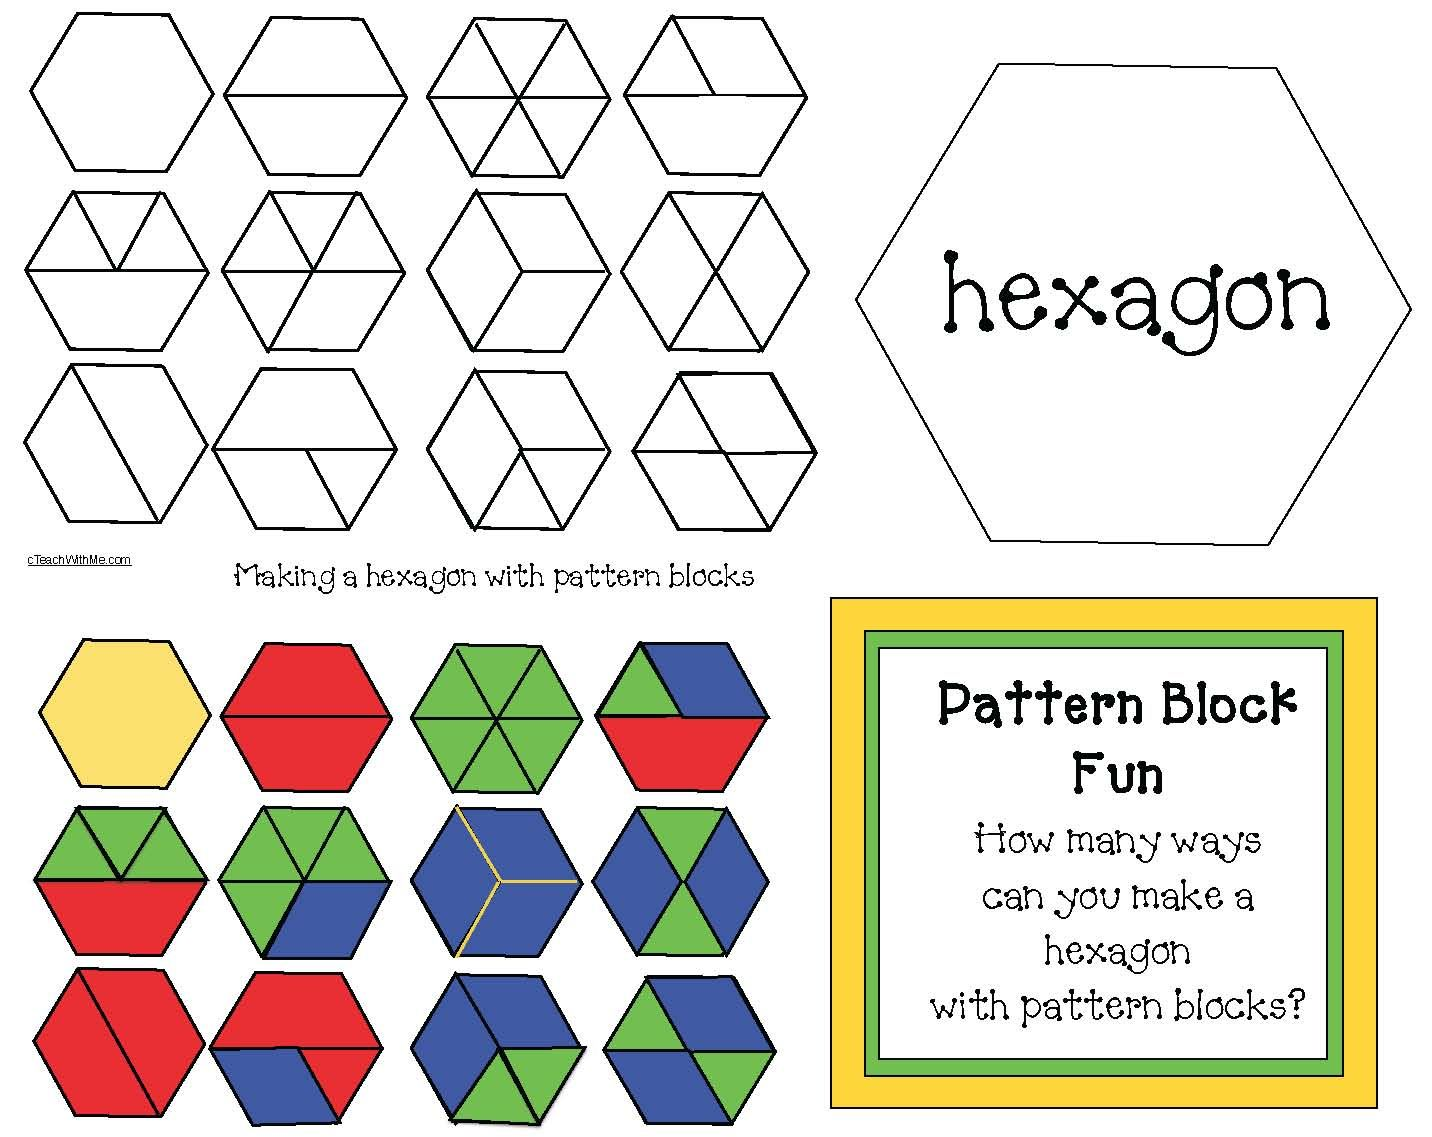 Pattern block activities math pinterest pattern block pattern blocks pattern block stickers trapezoid pattern blocks trapezoid activities pattern block spiritdancerdesigns Image collections